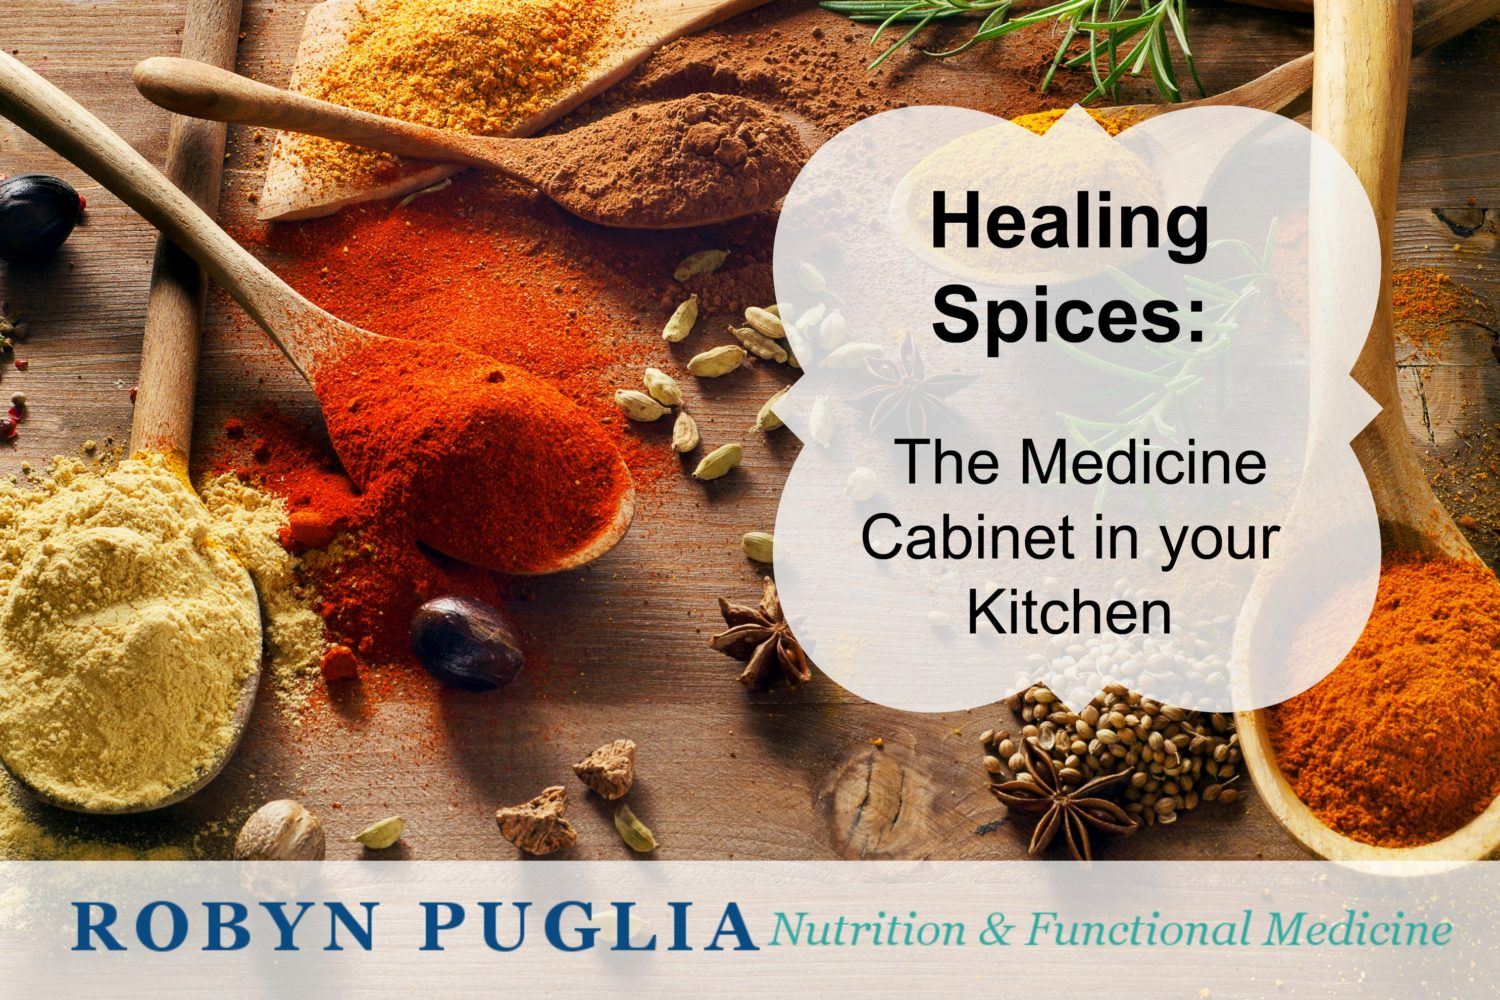 Fun Find Friday - Healing Spices, the medicine cabinet in your kitchen.